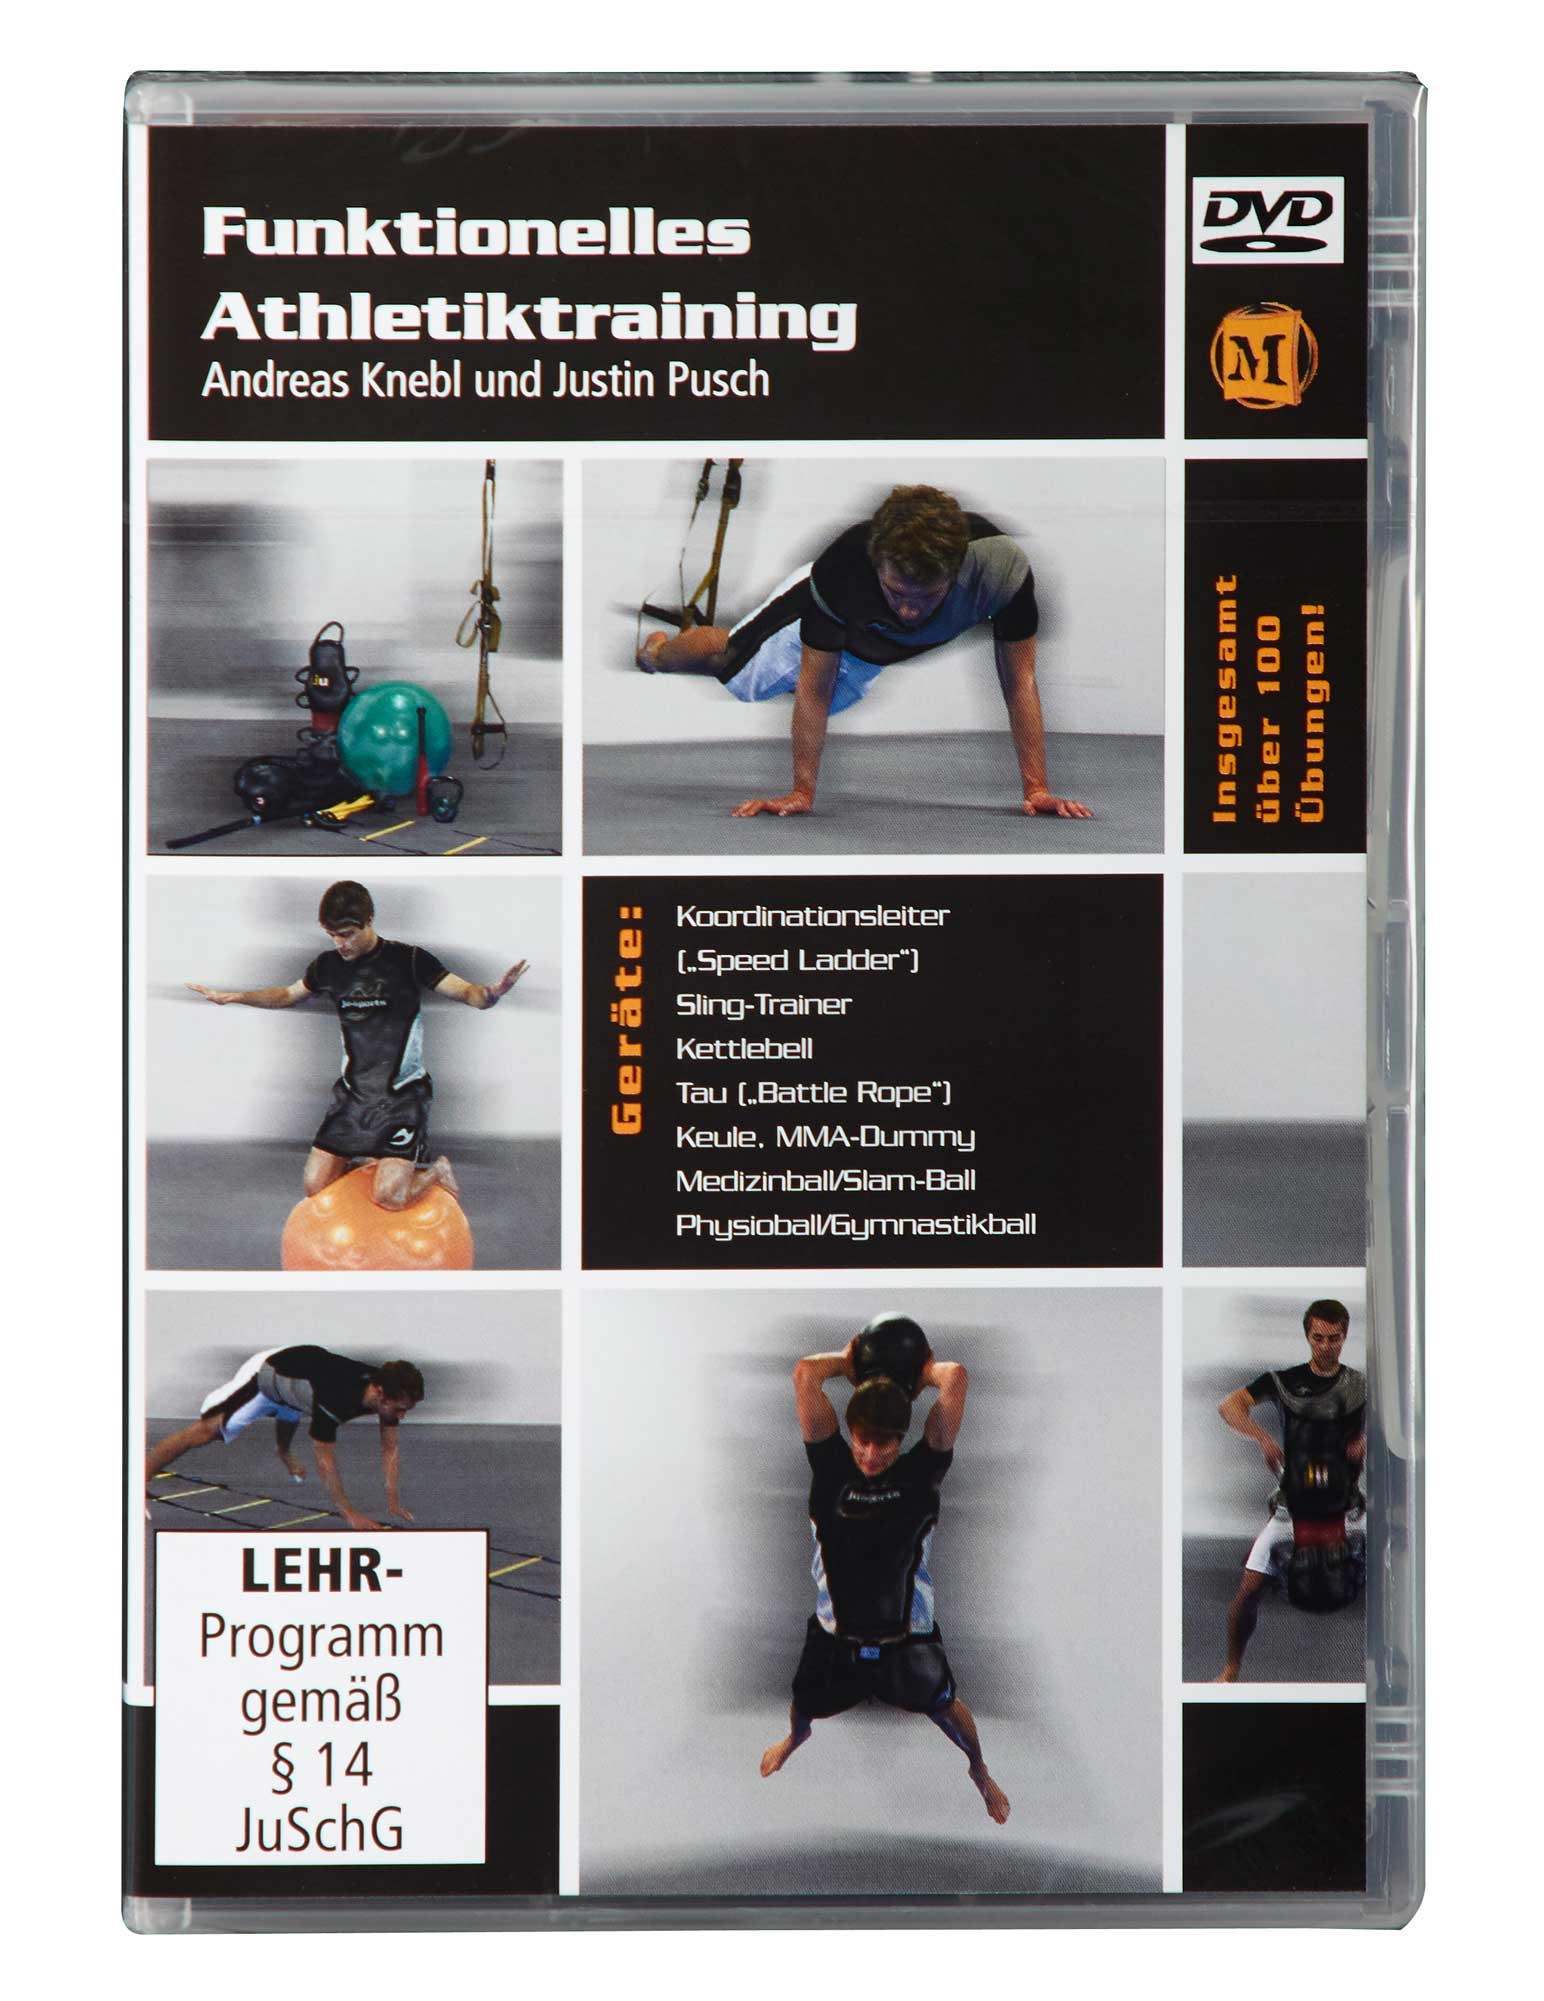 Funktionelles Athletiktraining